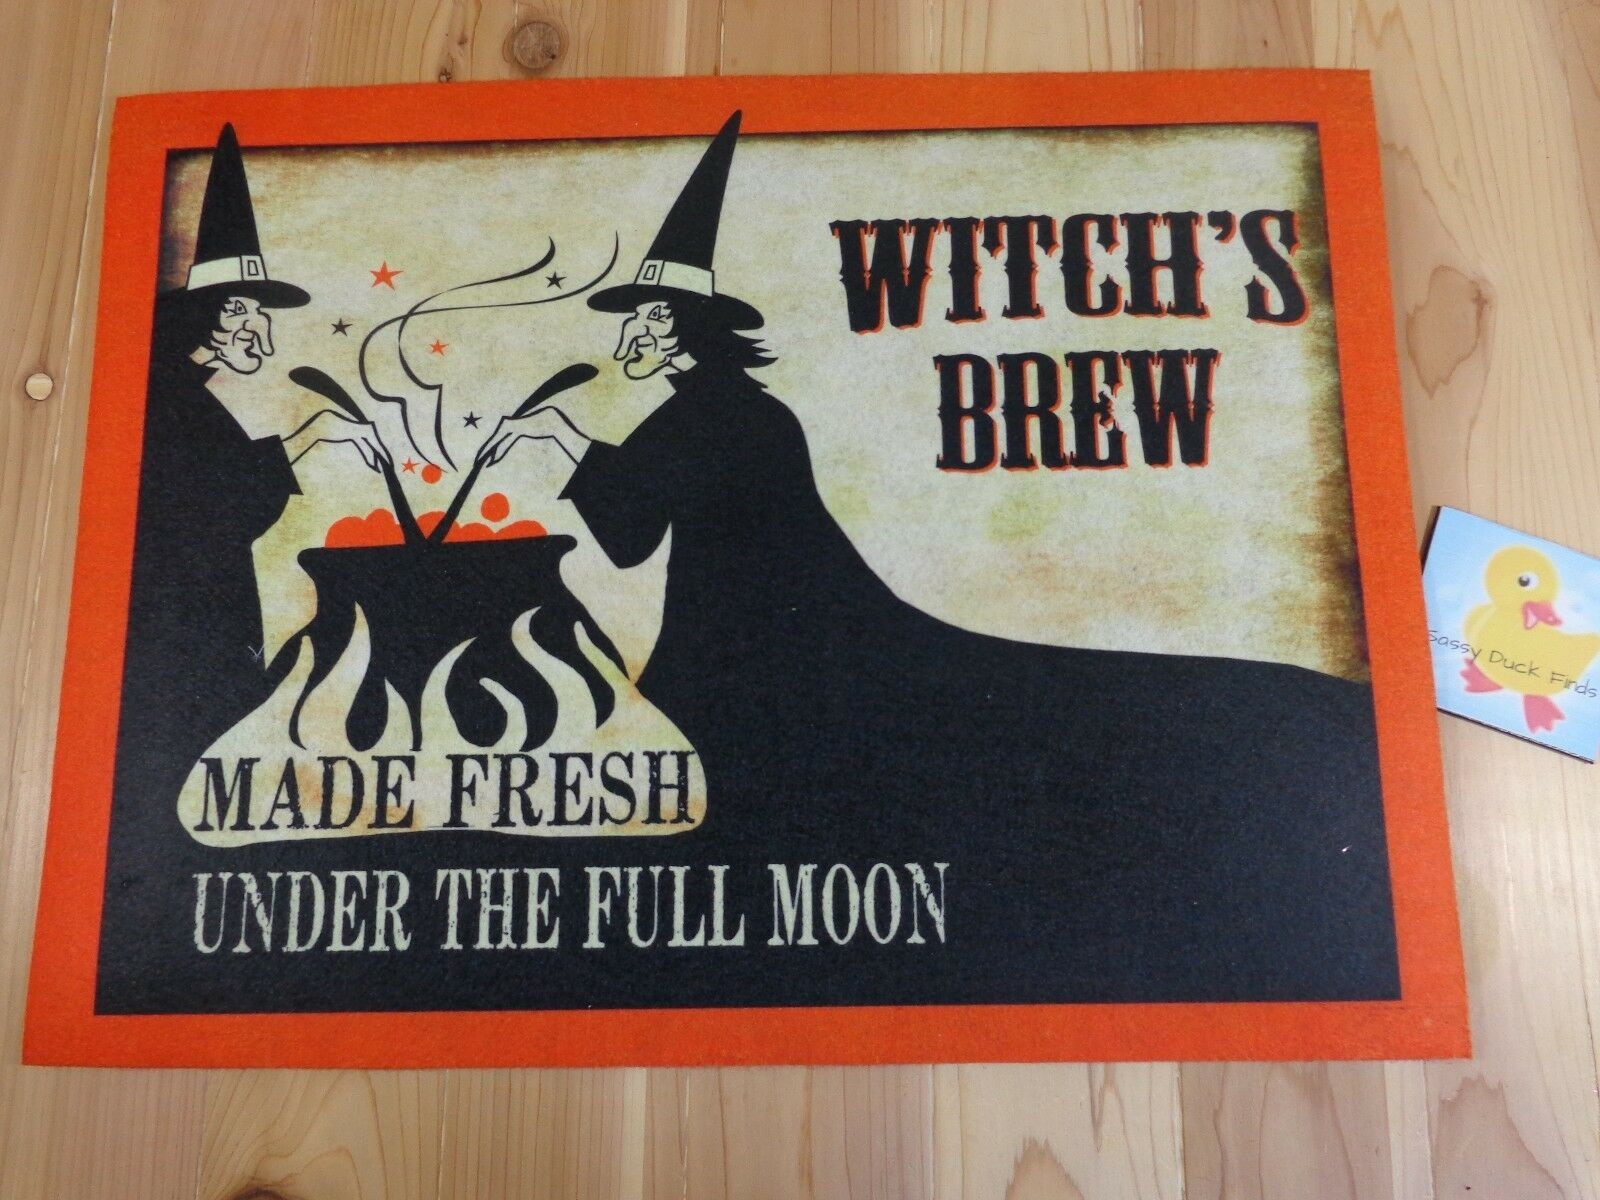 halloween door mat witch's brew made fresh full moon 18x24 orange